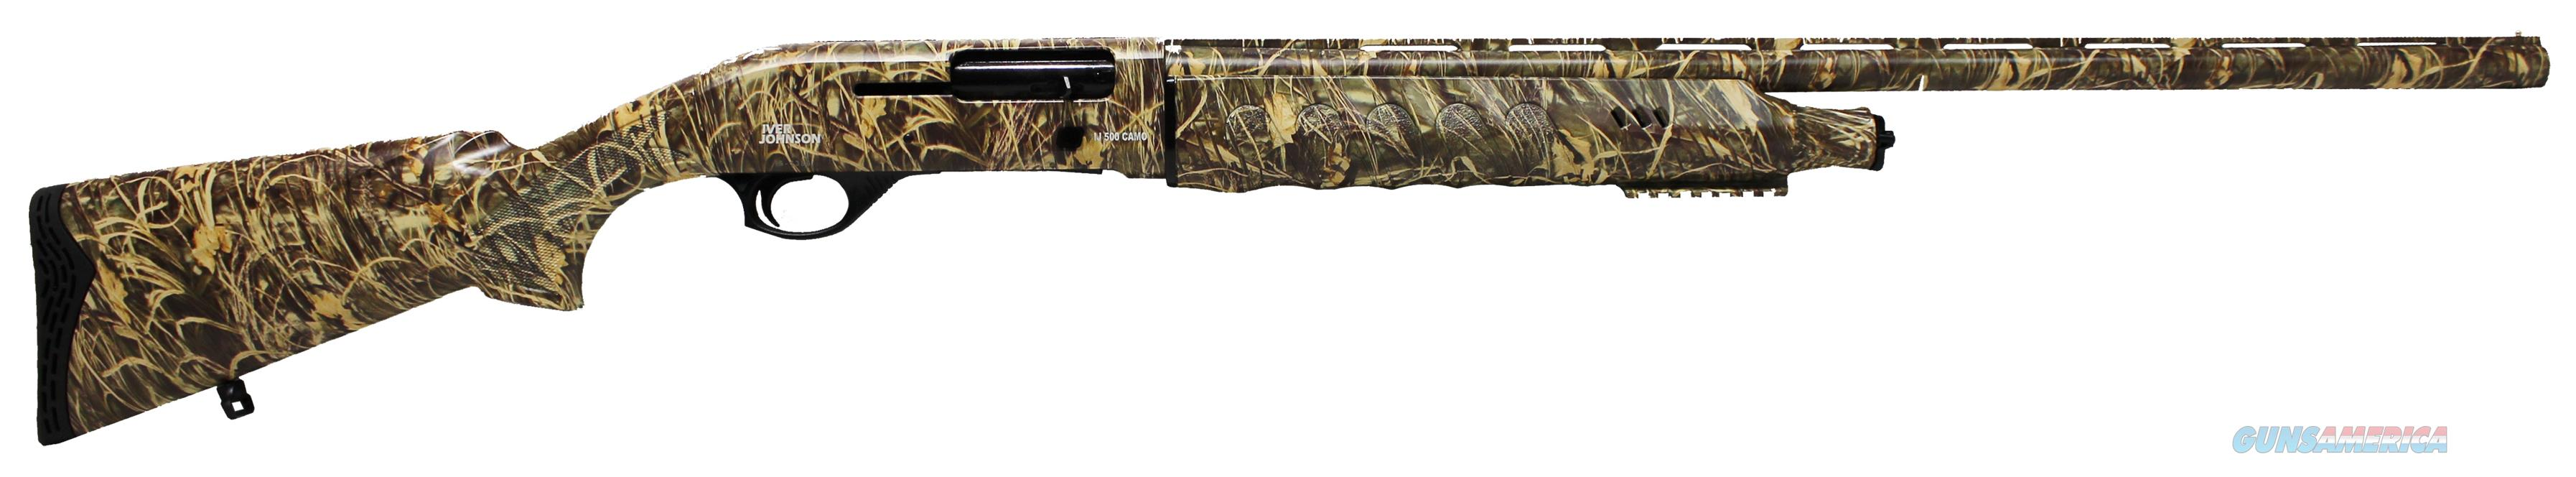 Iver Johnson Arms IJ500 12ga Max4 camo semi NEW  Guns > Shotguns > Iver Johnson Shotguns